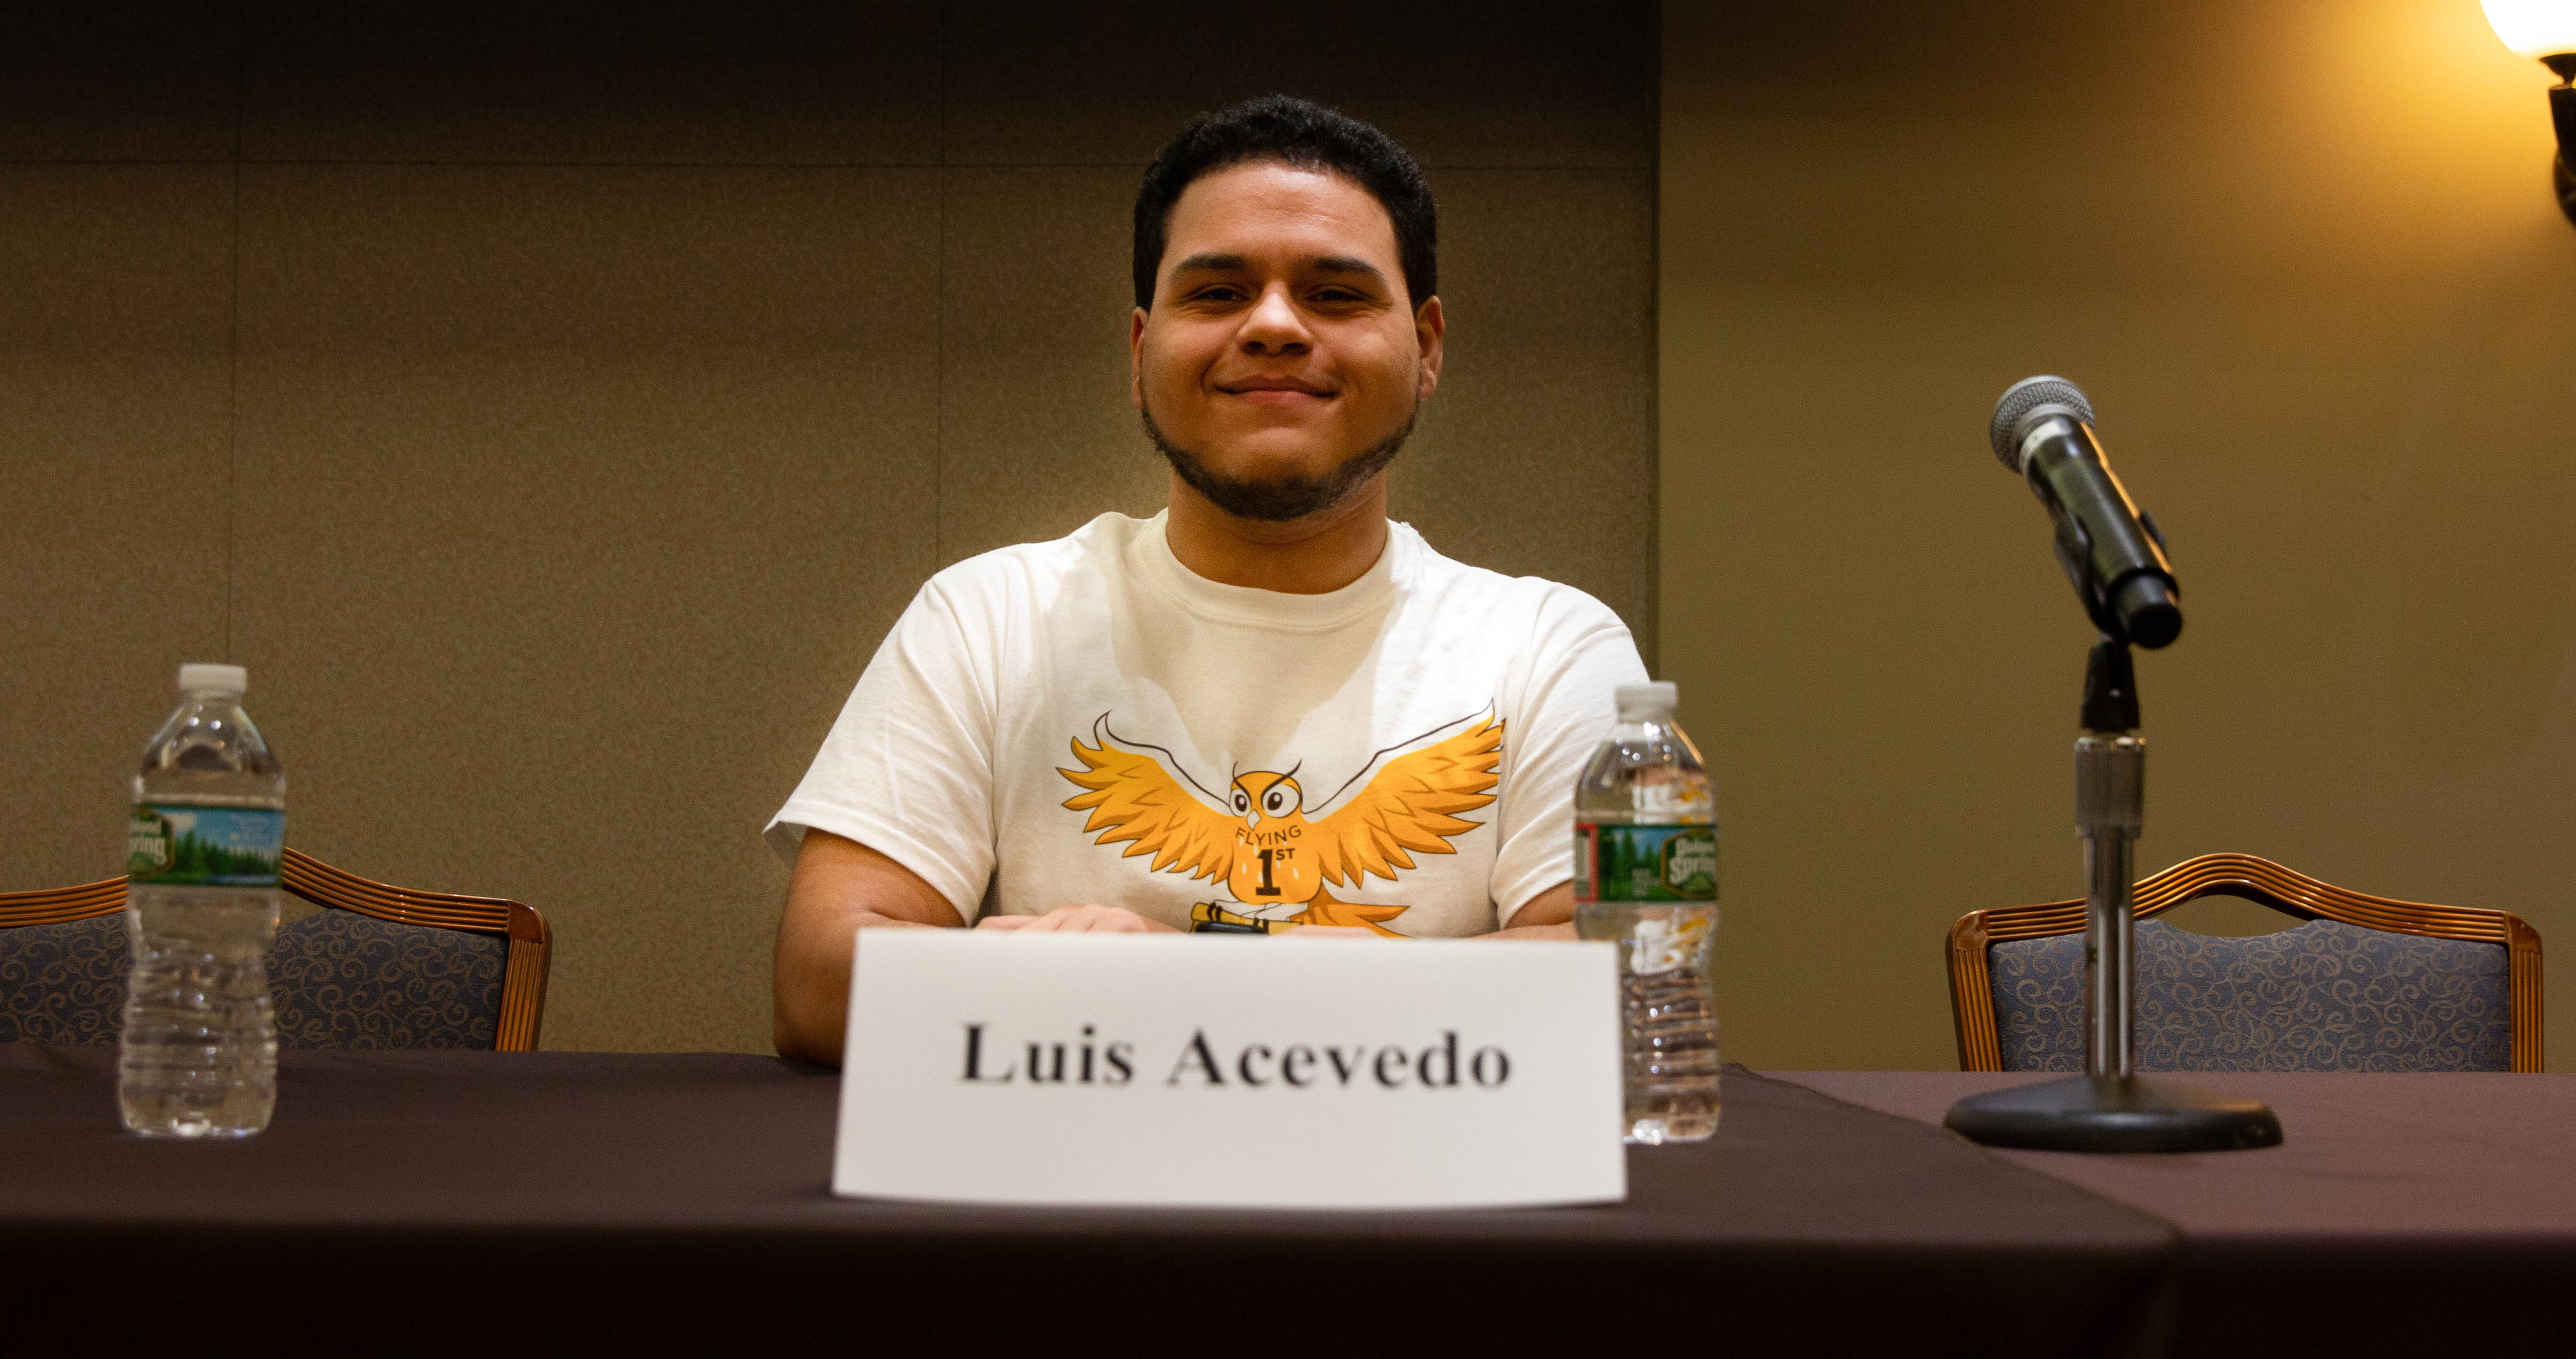 Luis speaking at the First-Generation Student Symposium on Feb. 13, 2019 at Rowan University.